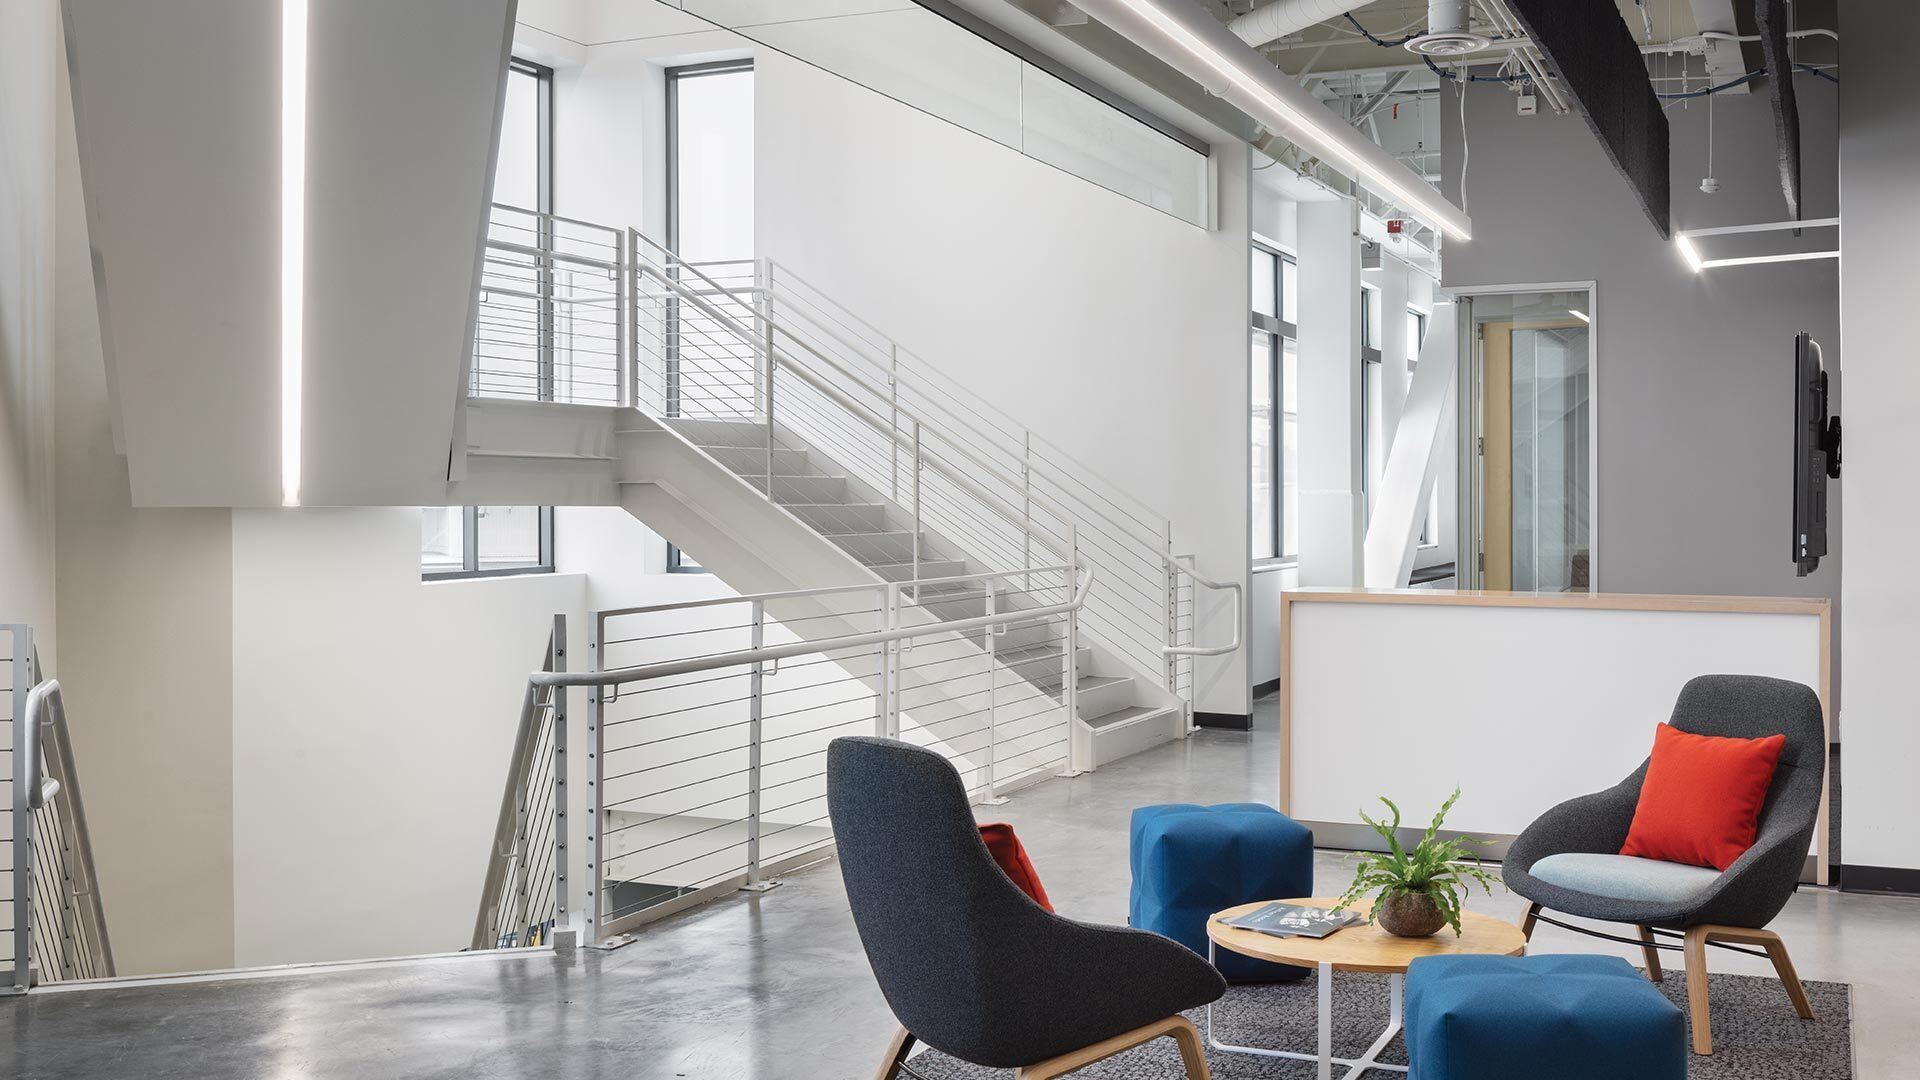 SFO Consolidated Administration Campus is located in San Fransisco, CA featuring lighting products by Acuity Brands - A-Light. Project in collaboration with JS Nolan, Mark Cavagnero Associates Architects, Perkins + Will, Webcor Builders, and Acuity Brands agent 6500.   Photographer: Mike Kelley